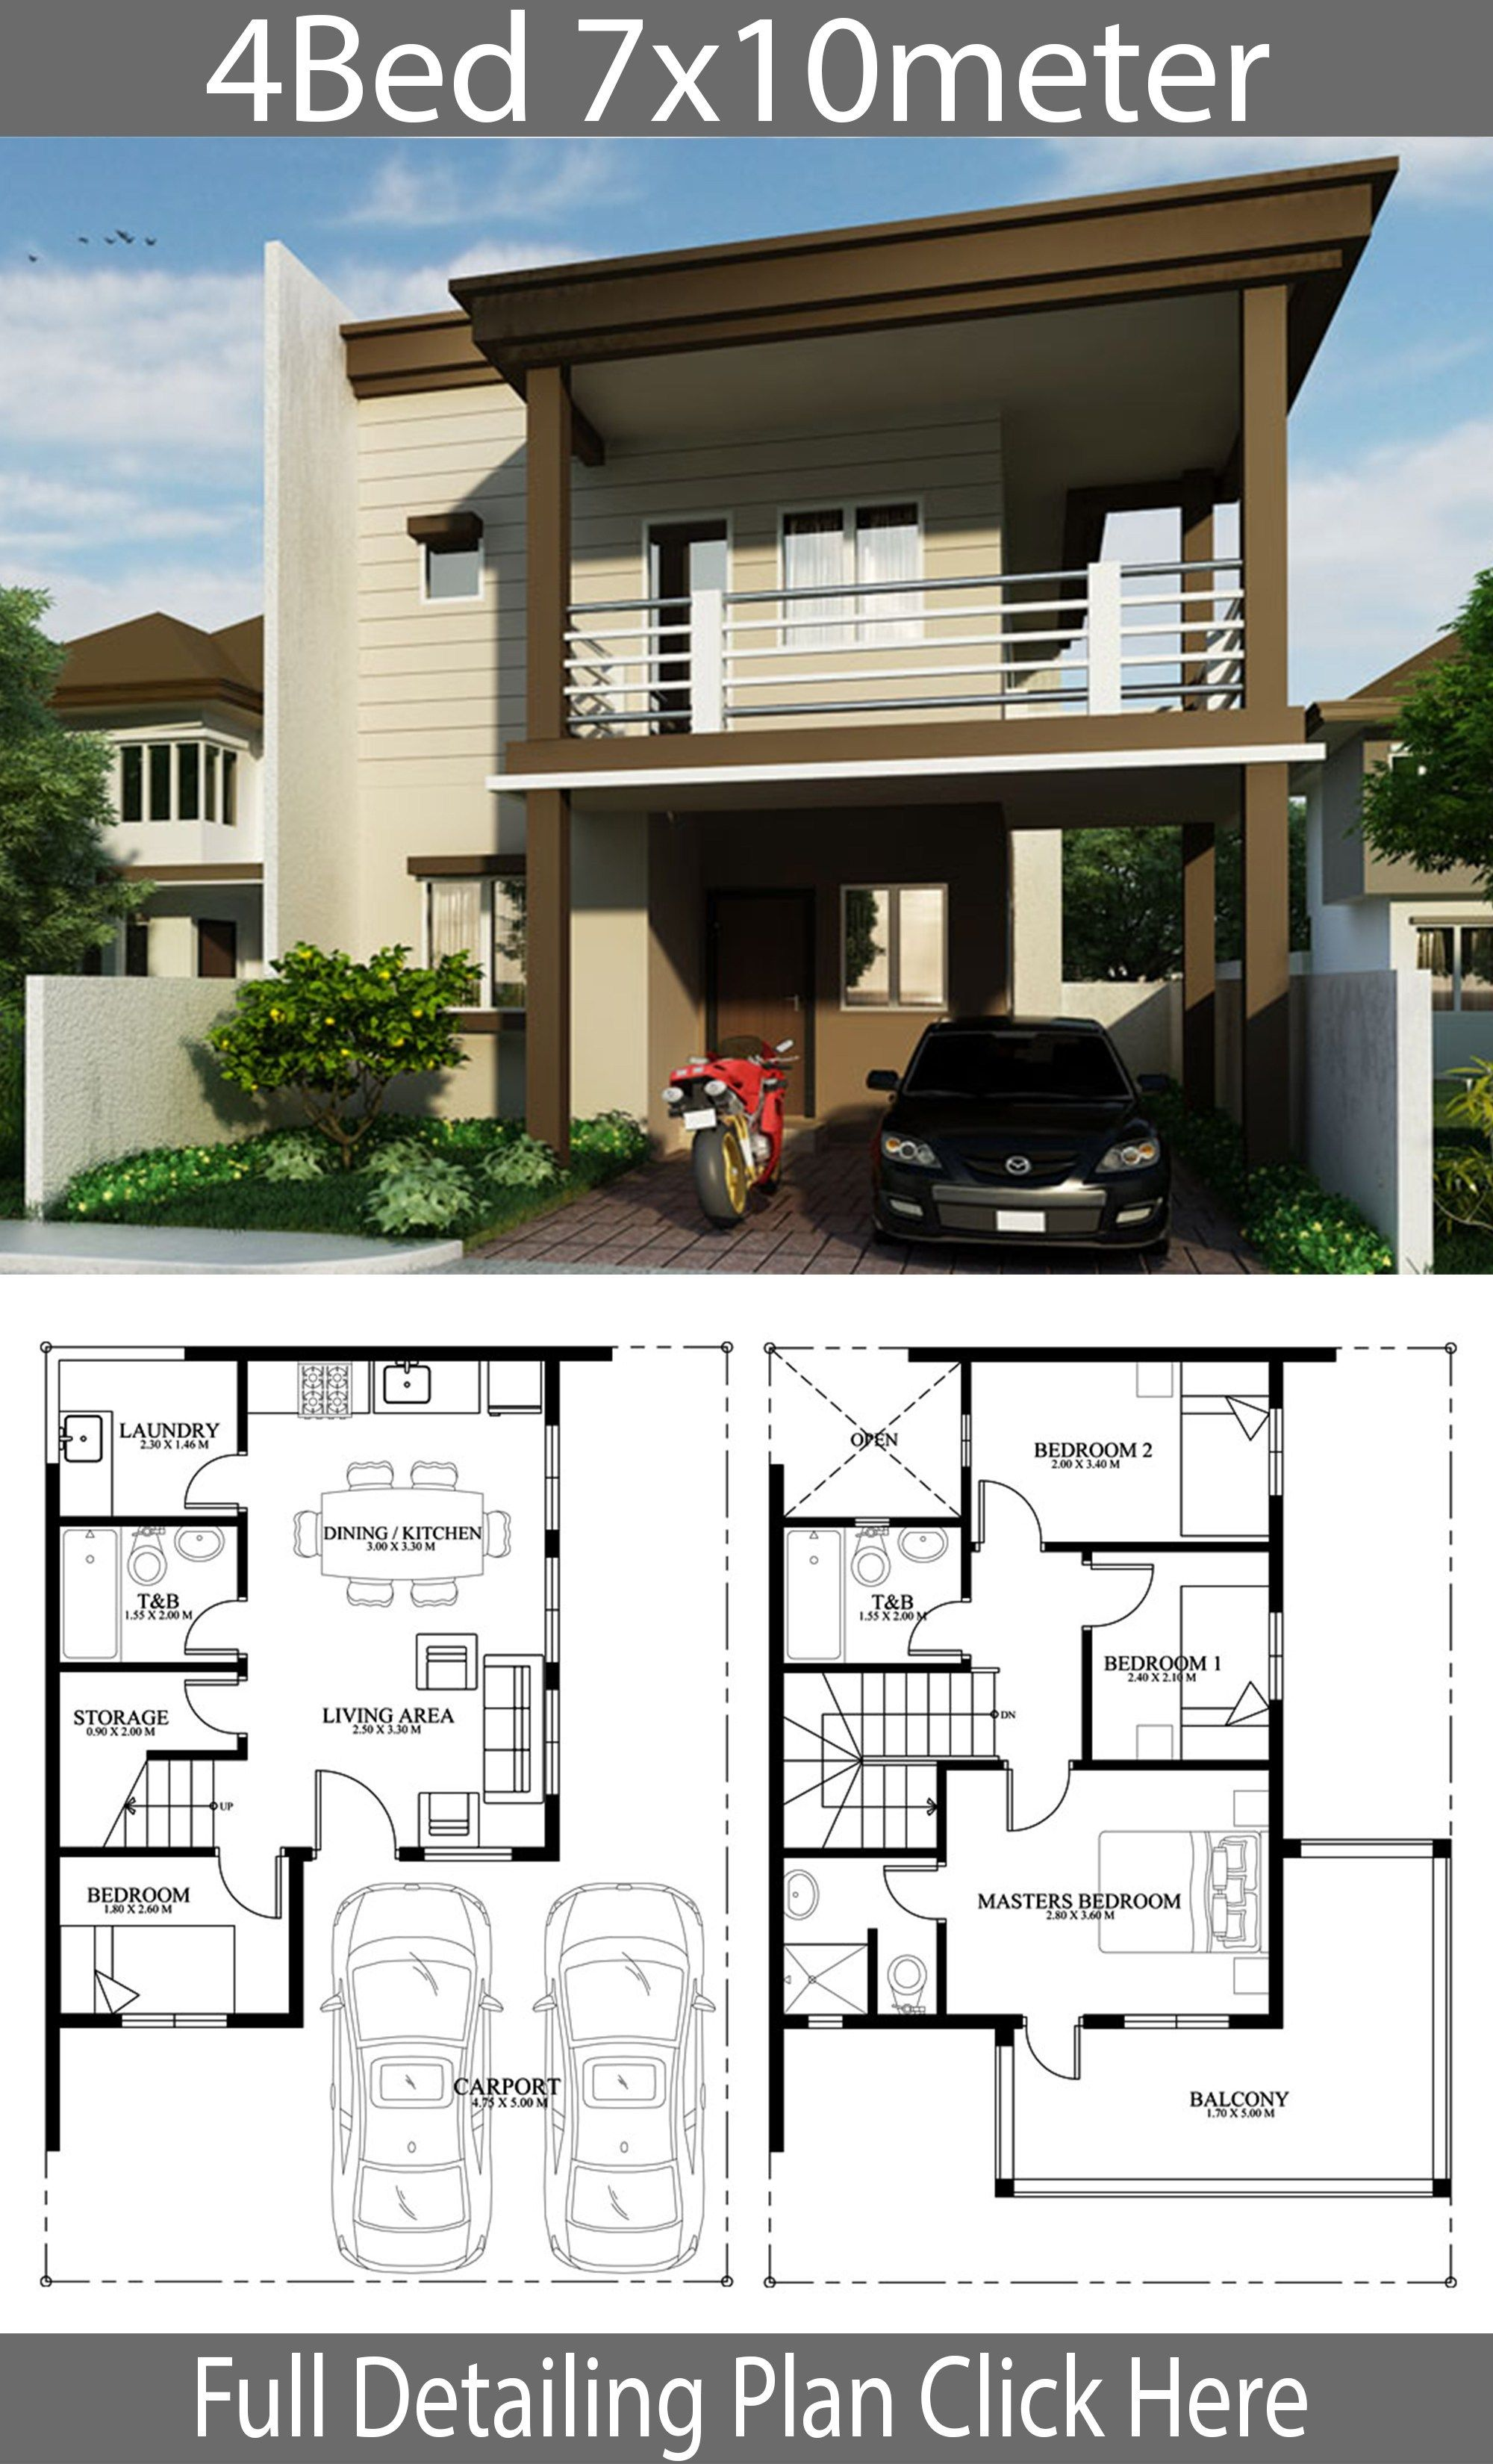 Home Design Plan 7x10m With 4 Bedrooms House Description One Car Parking And Gardenground Level Model House Plan House Front Design Small House Design Plans